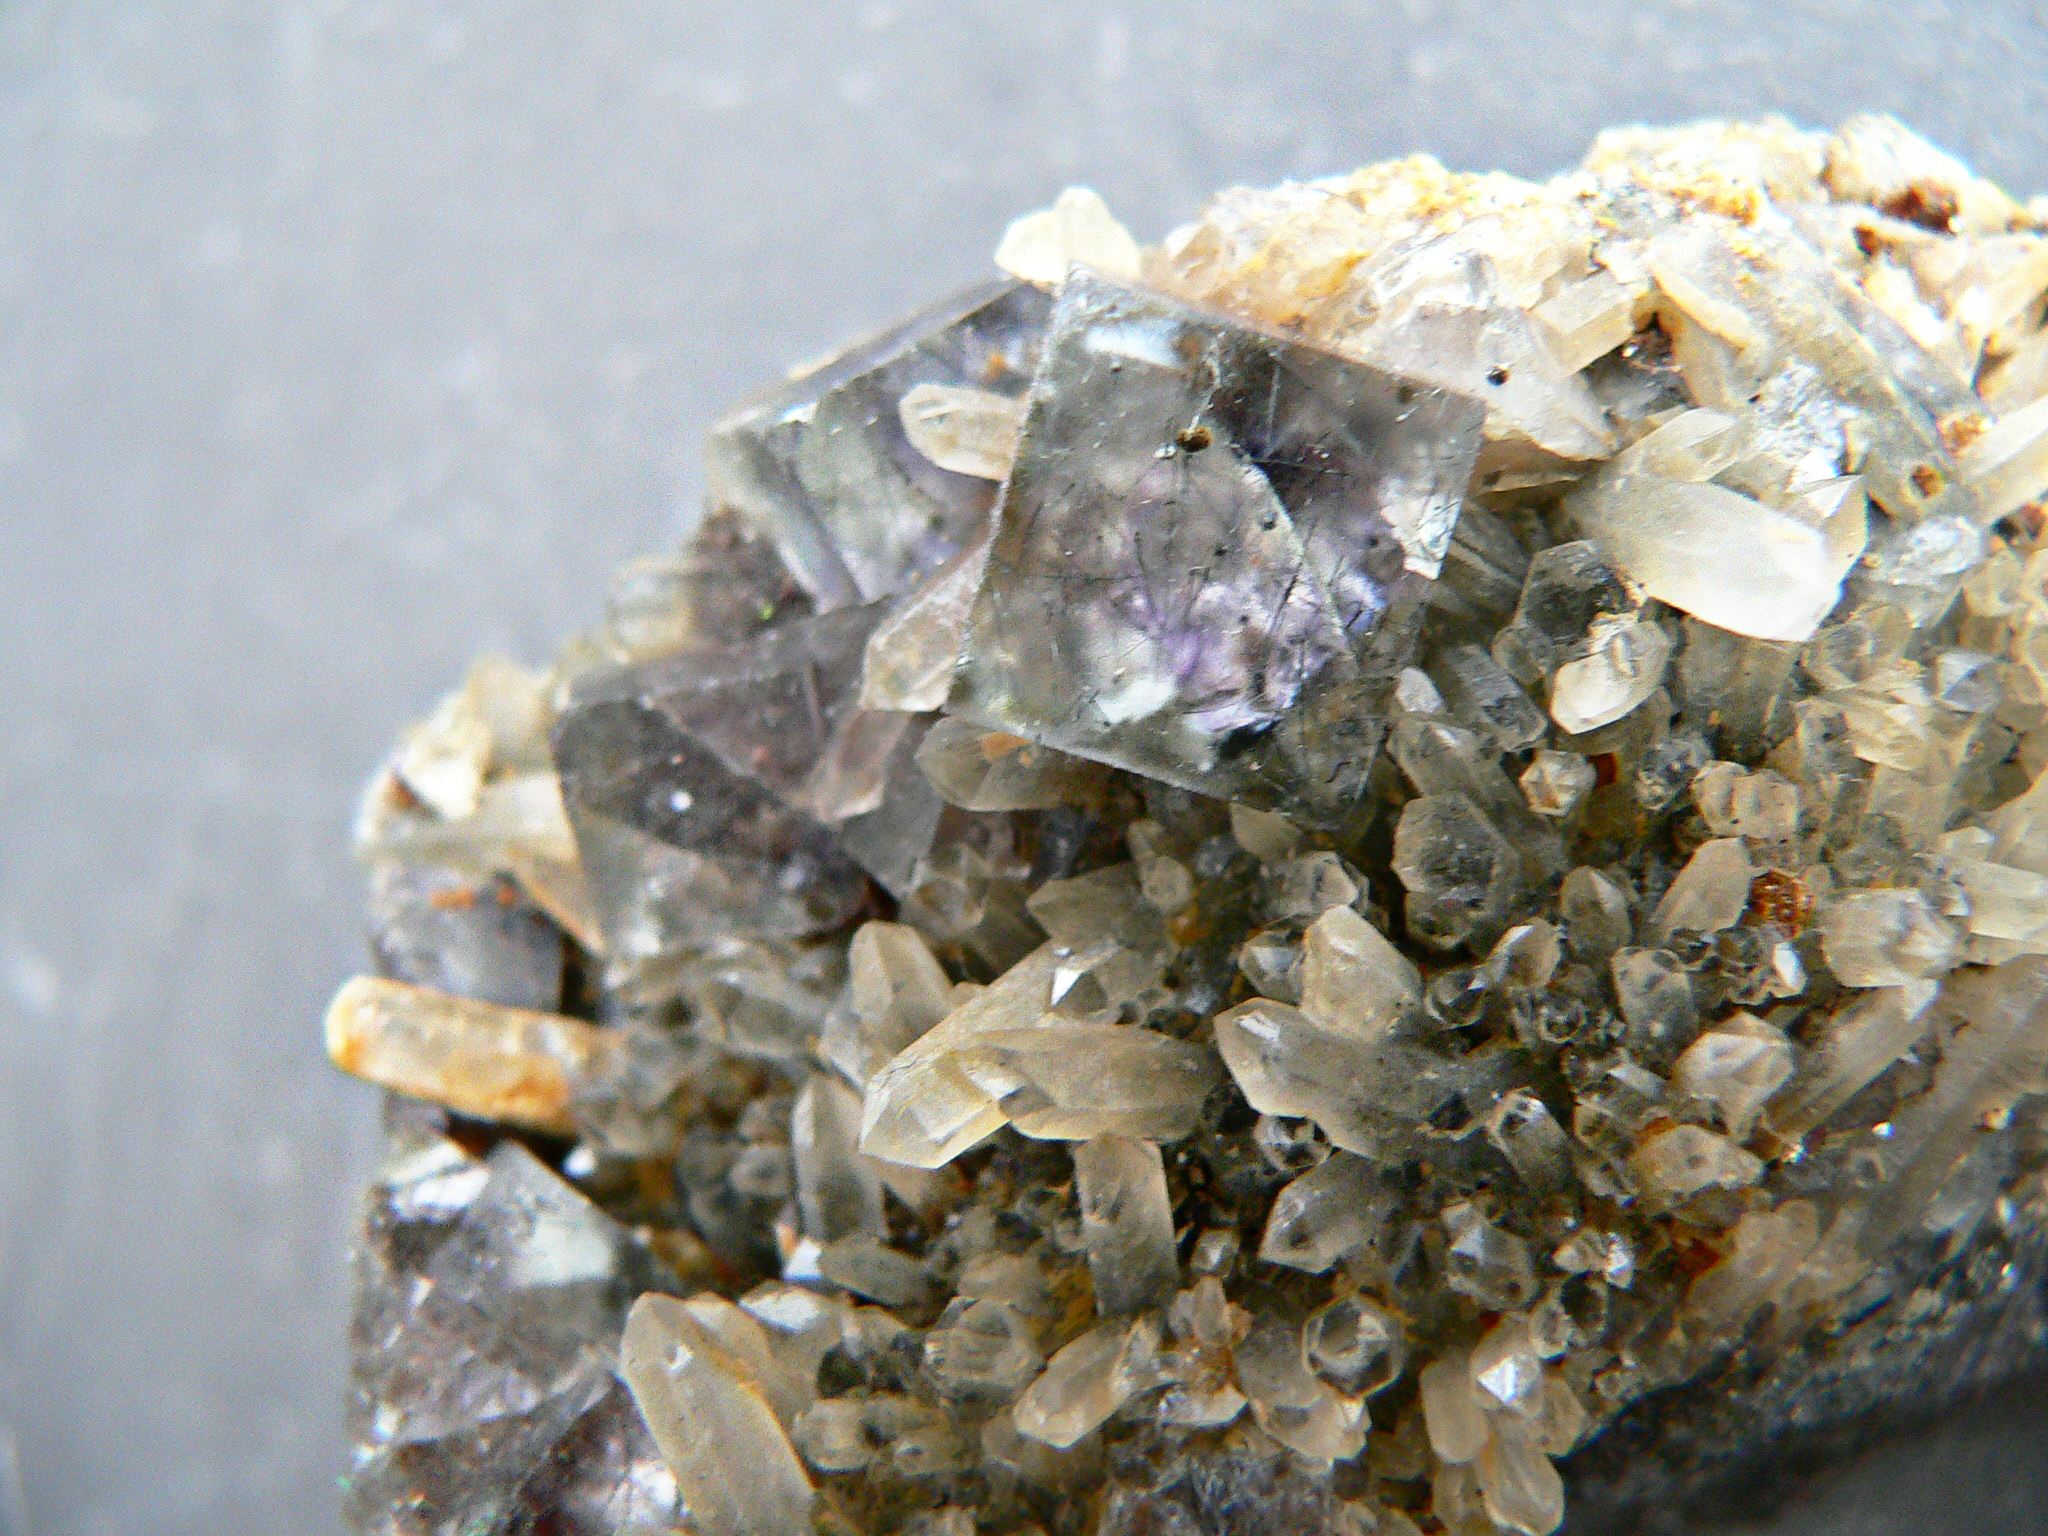 FLOURITE + QUARTZ CRYSTAL MATRIX